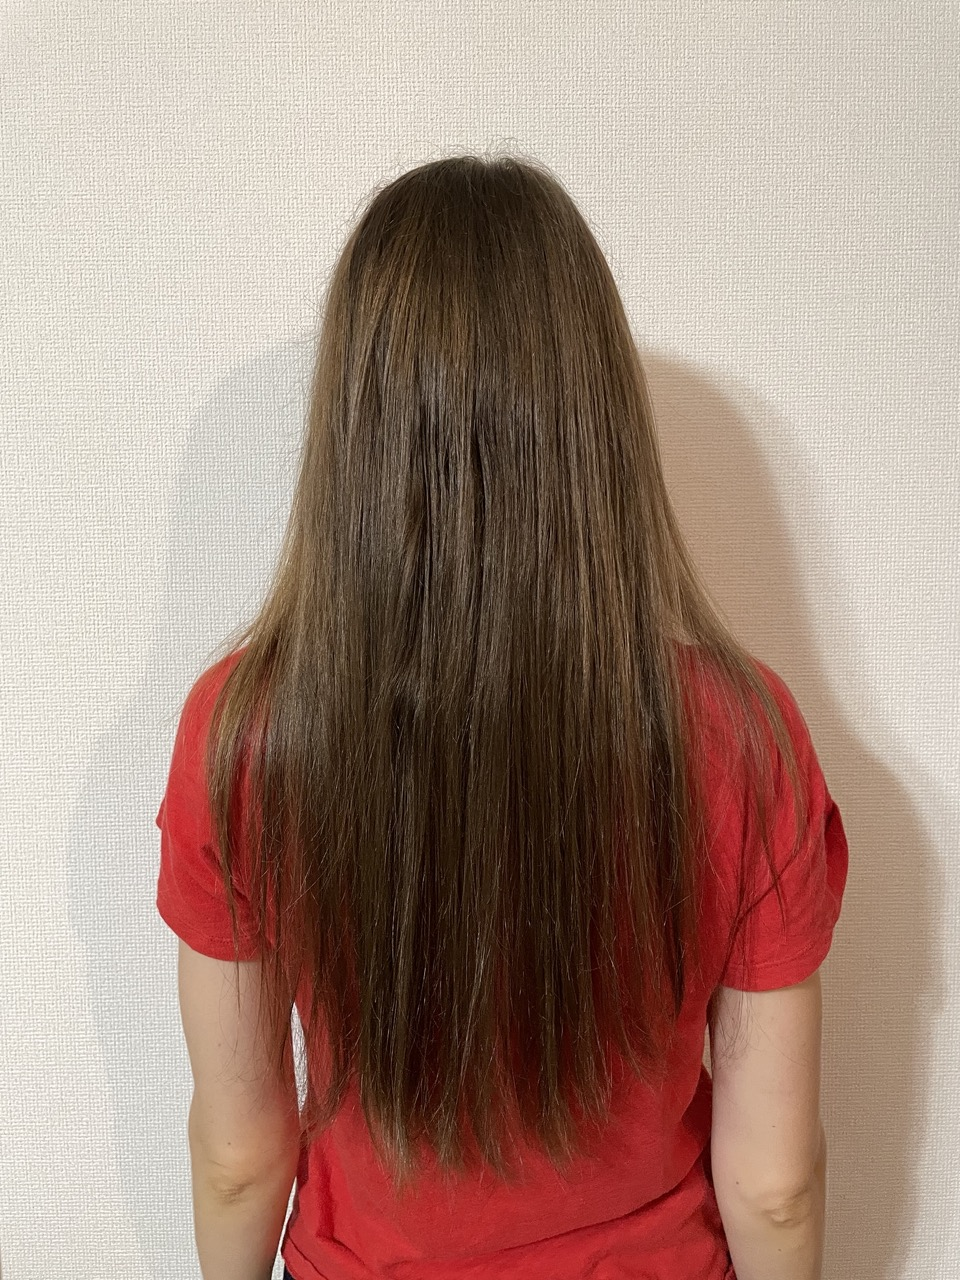 hair_ater_using_the_public_organic_super_bouncy